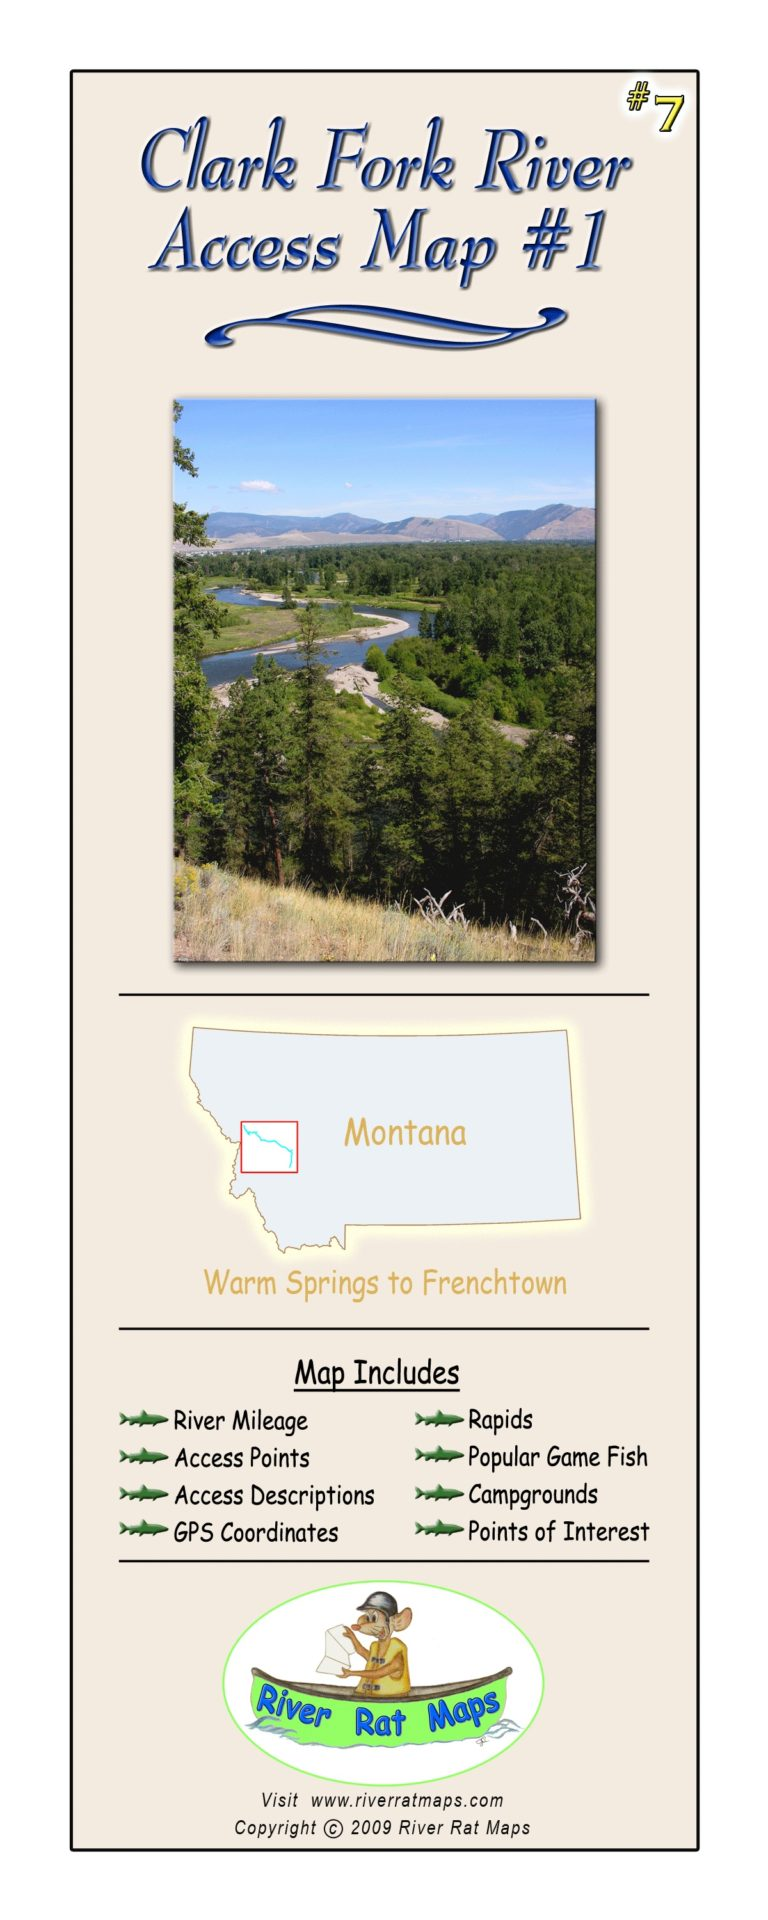 Clark Fork River Map #1 by River Rat Maps